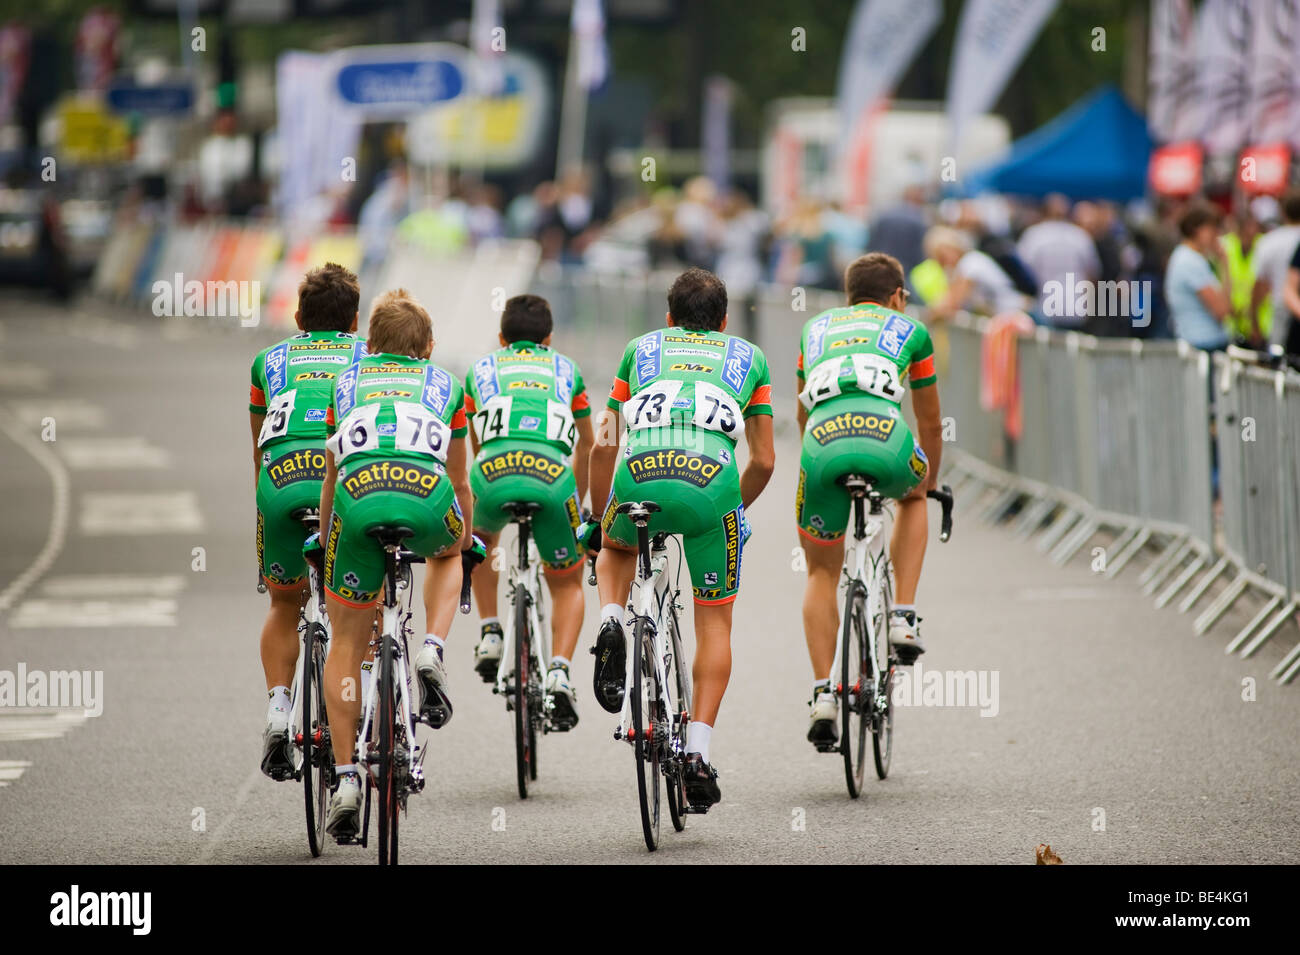 CSF Navigare team warm up on The Embankment, Tour of Britain Cycle Race, Stage 8, London - Stock Image